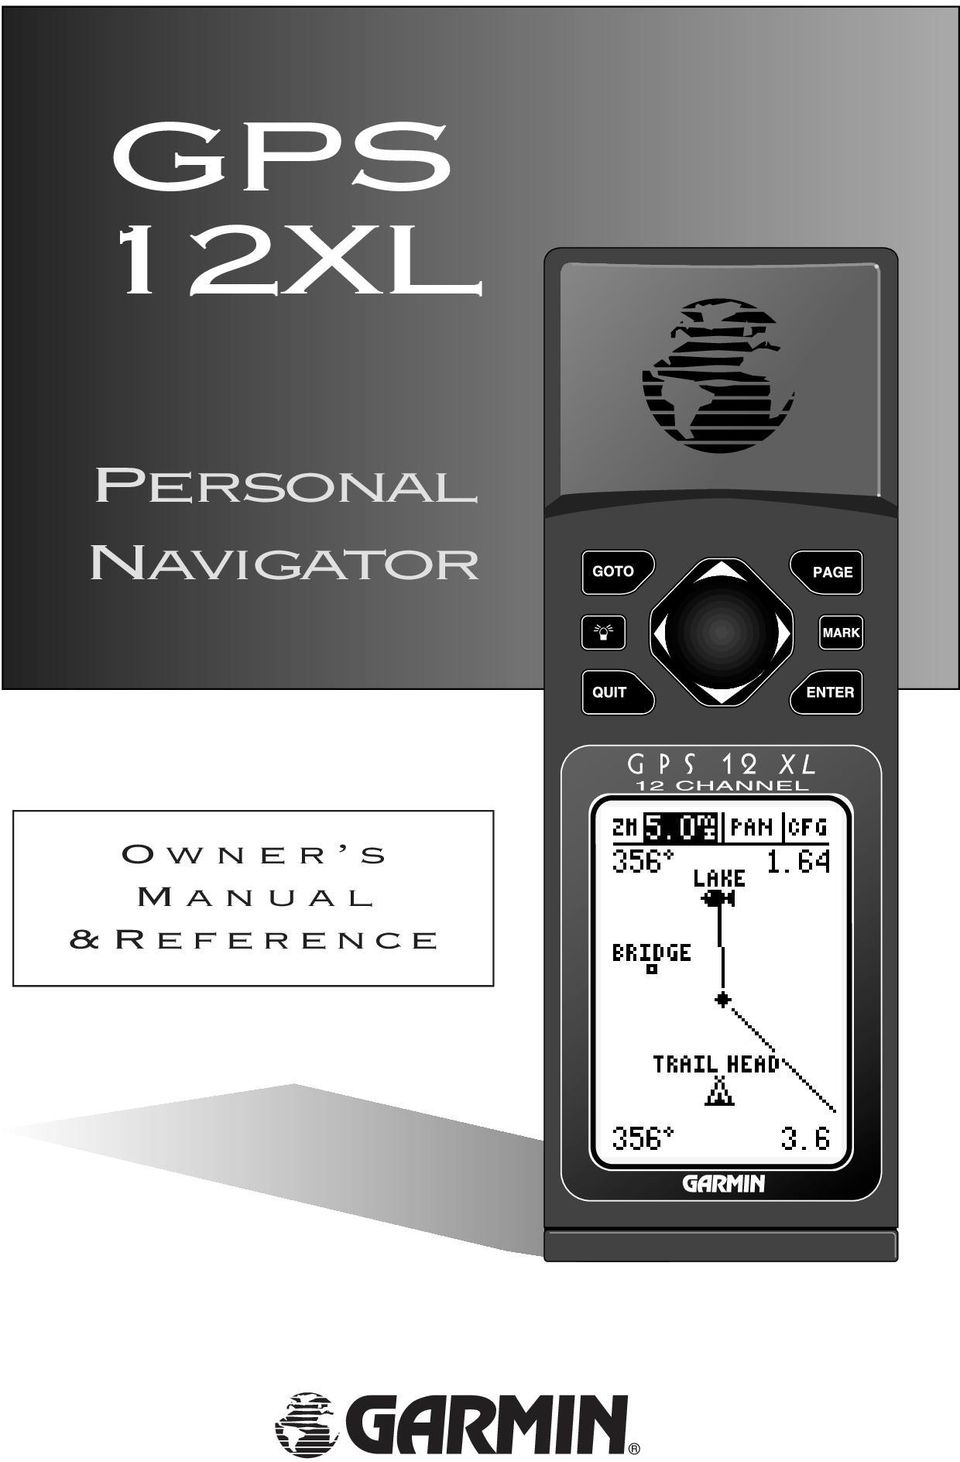 Nuvi 205 Manual Bolens G 12xl Wiring Diagram Background Image Array Gps Personal Navigator Owner S U0026reference Pdf Rh Docplayer Net